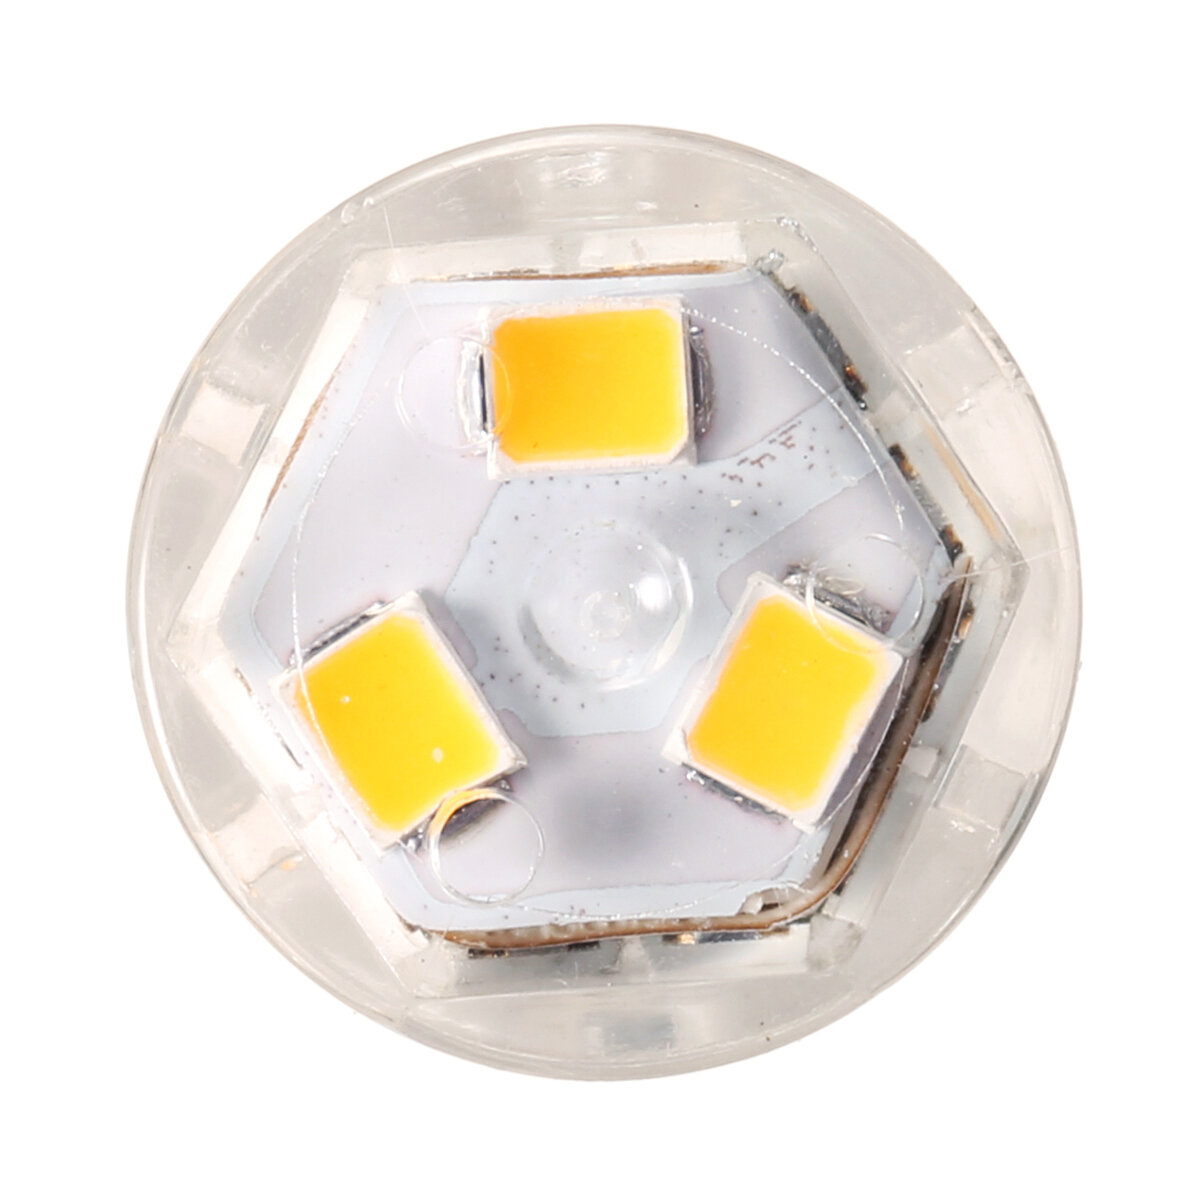 AC110-240V 9W G9 SMD2835 Non-dimmable 75 LED Ceramic Corn Light Bulb for Outdoor Home Decoration - 10